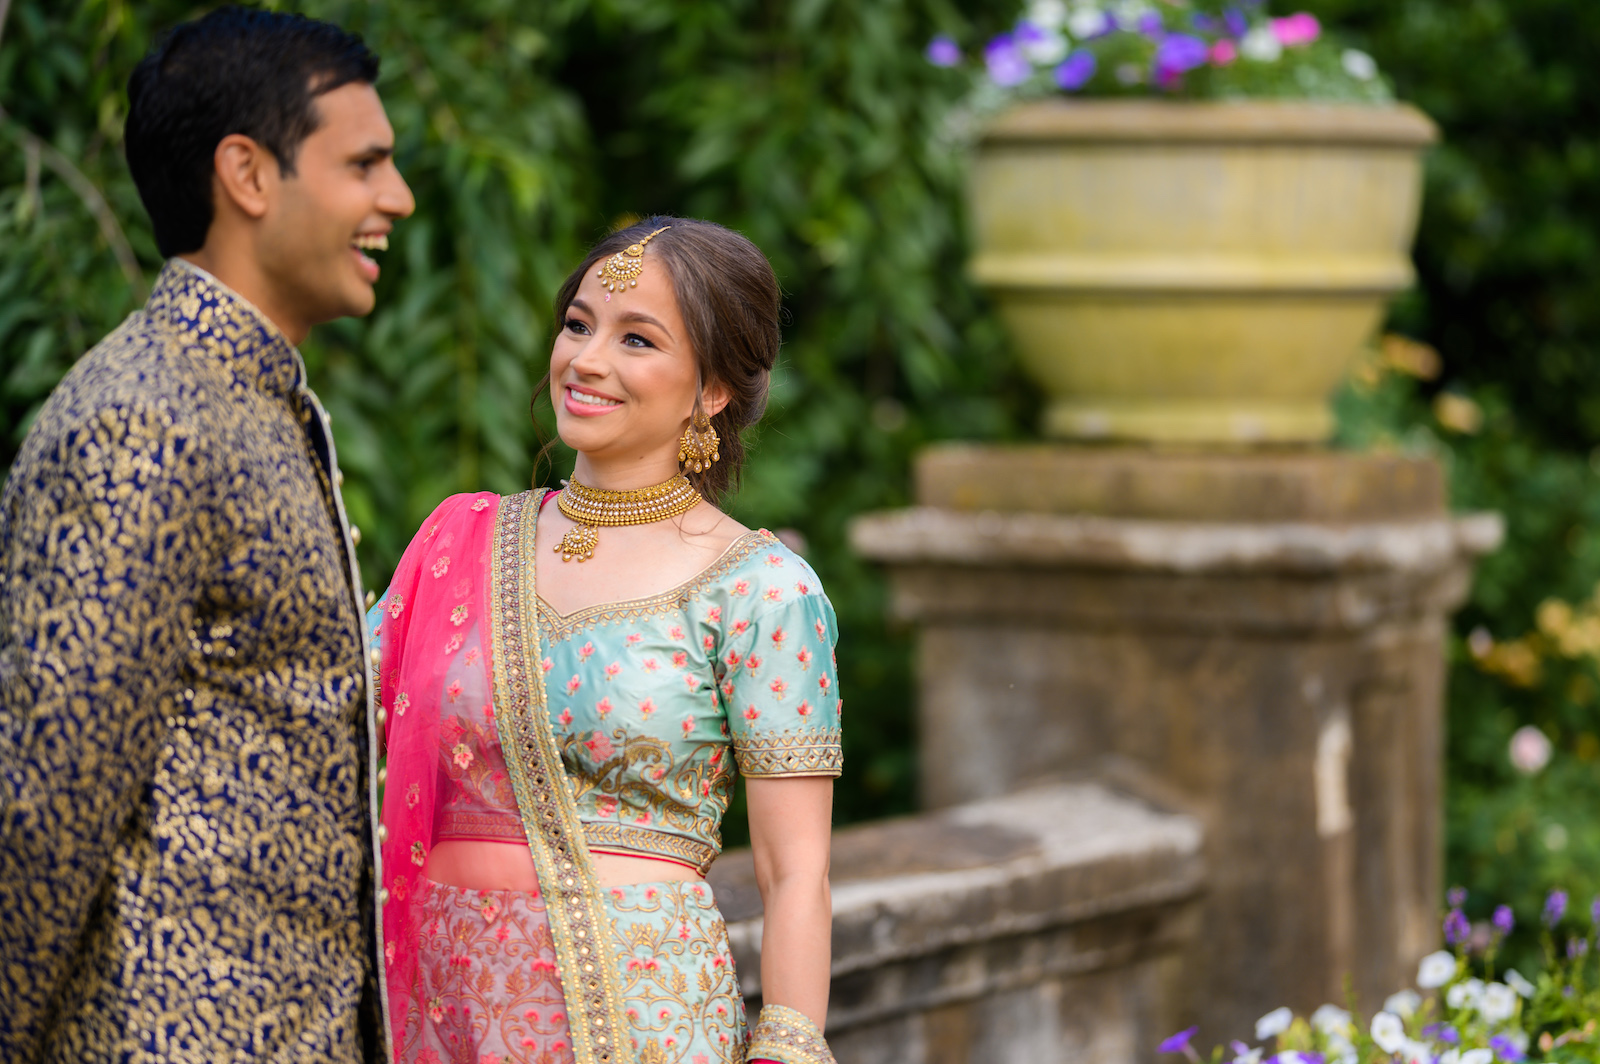 Charming Indian Wedding featured on NBG blog!